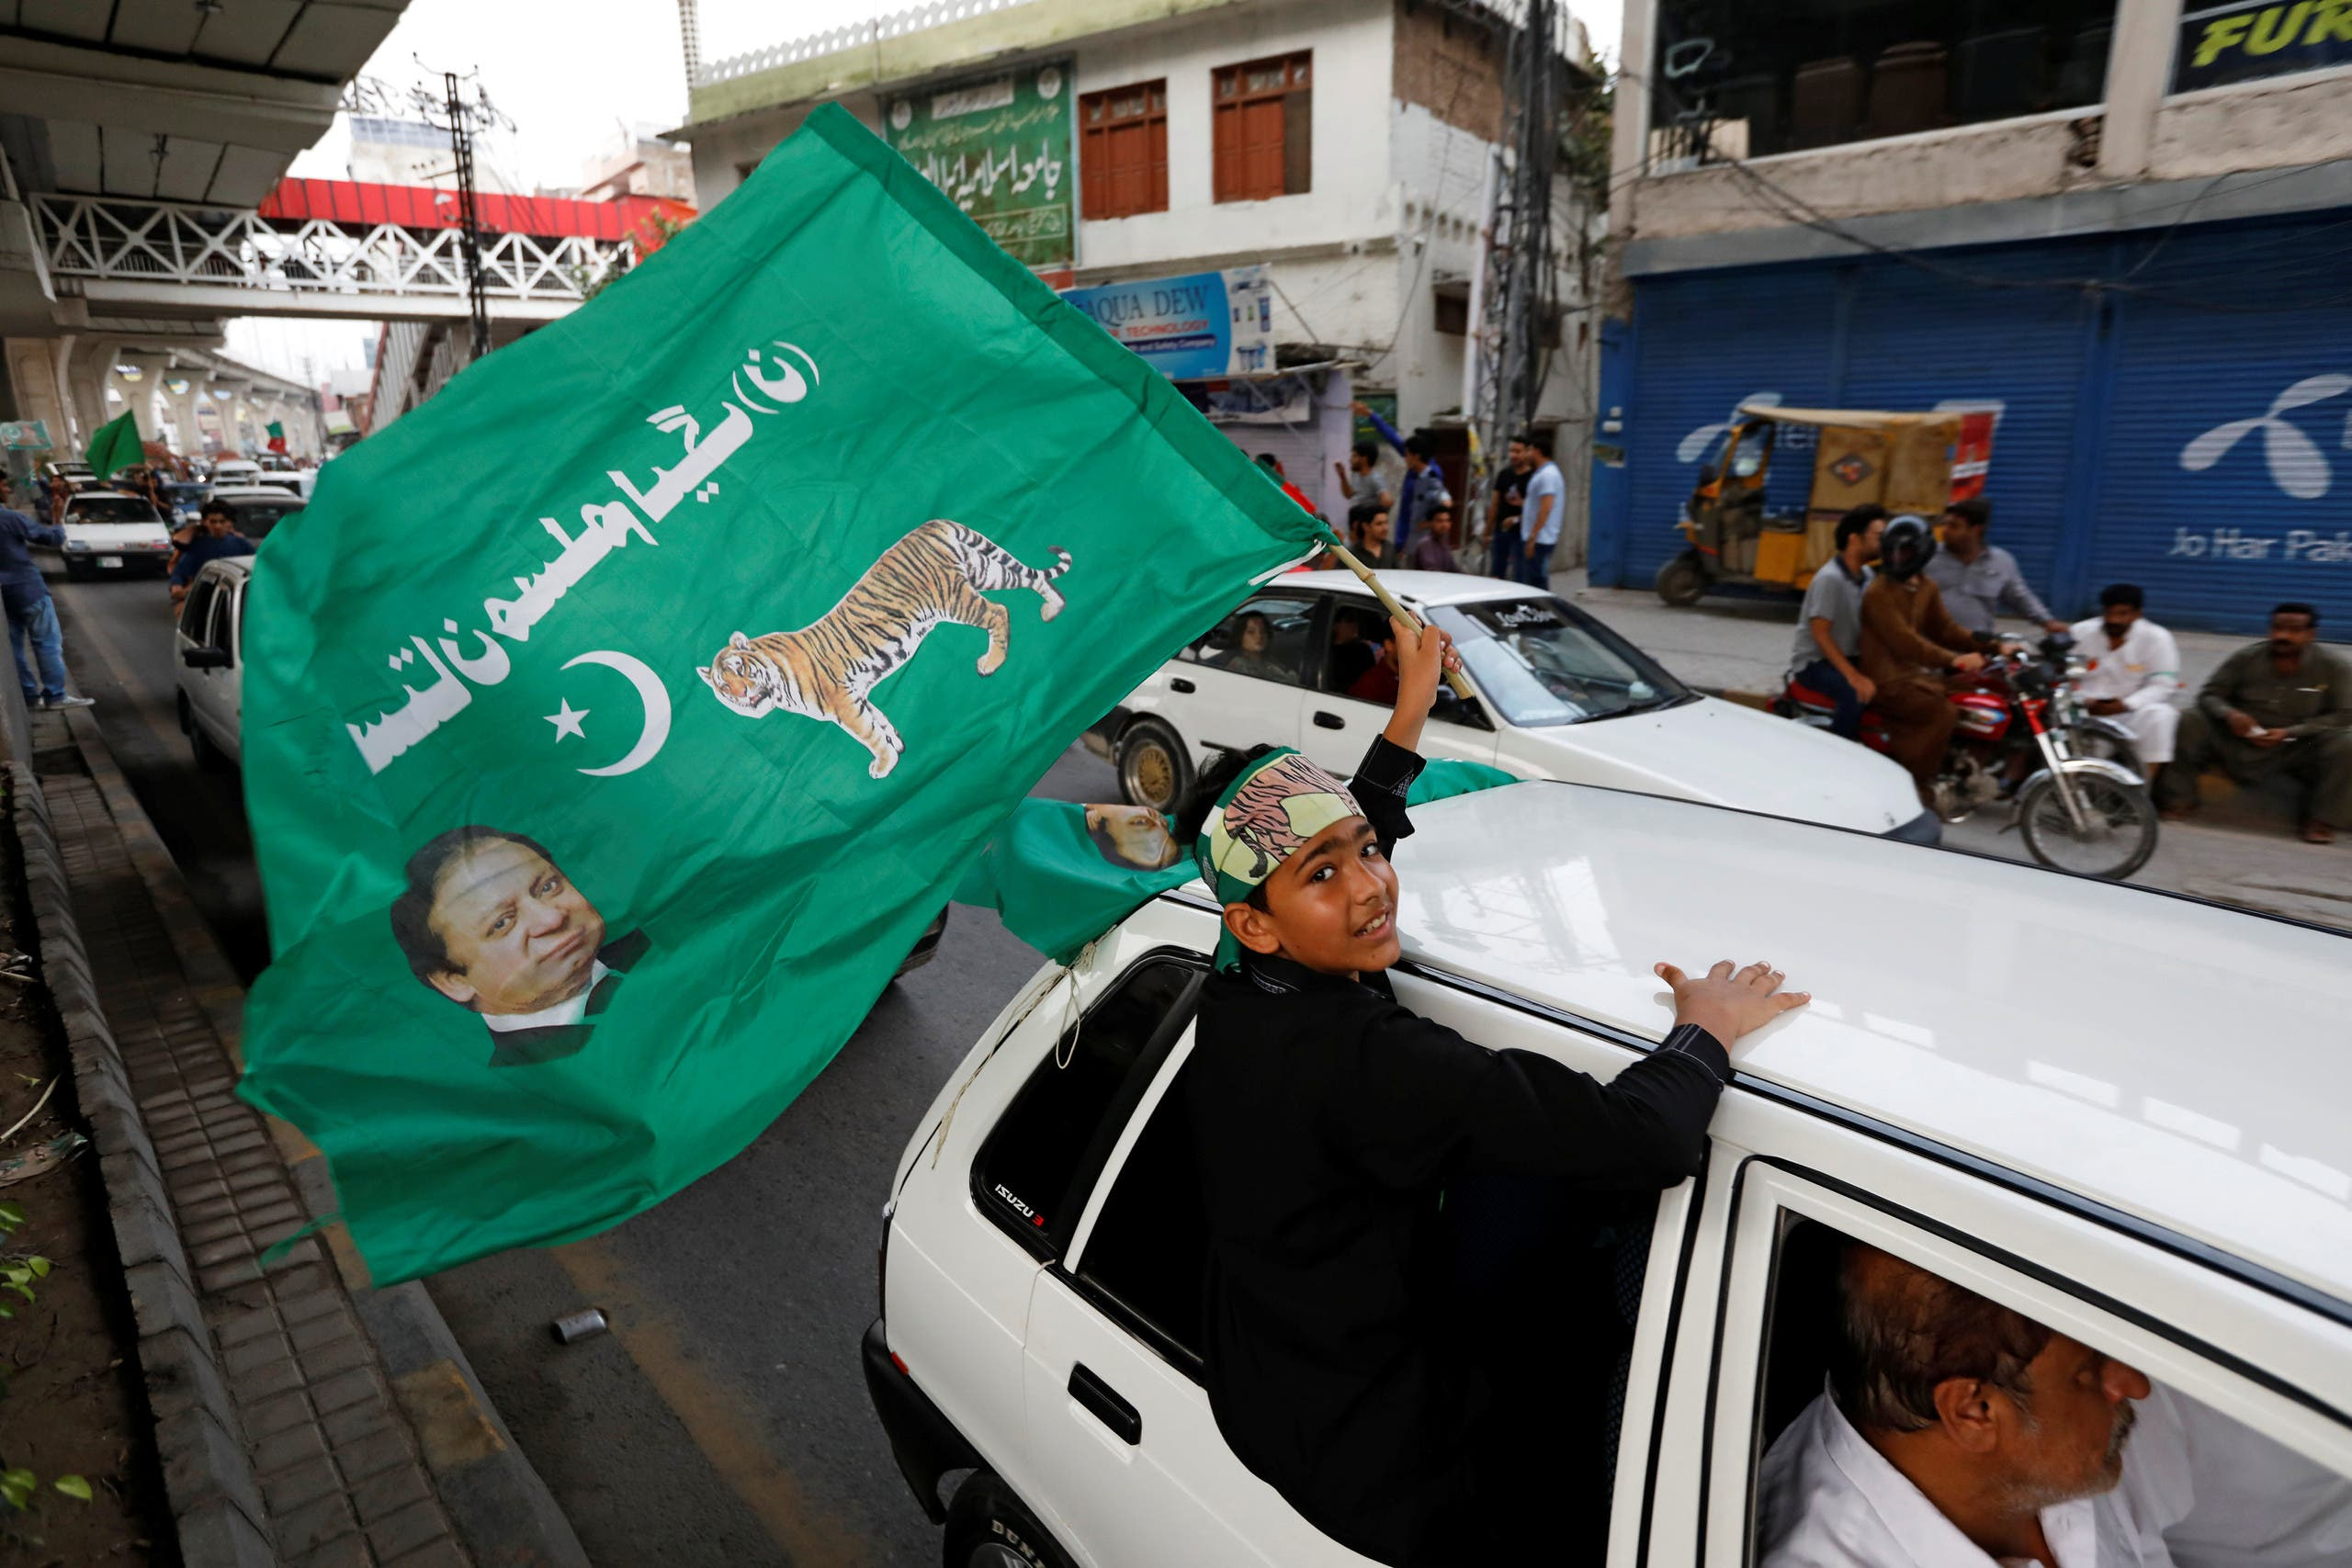 A supporter of Pakistan Muslim League-Nawaz (PML-N), waves a party flag during the general election in Rawalpindi on July 25, 2018. (Reuters)